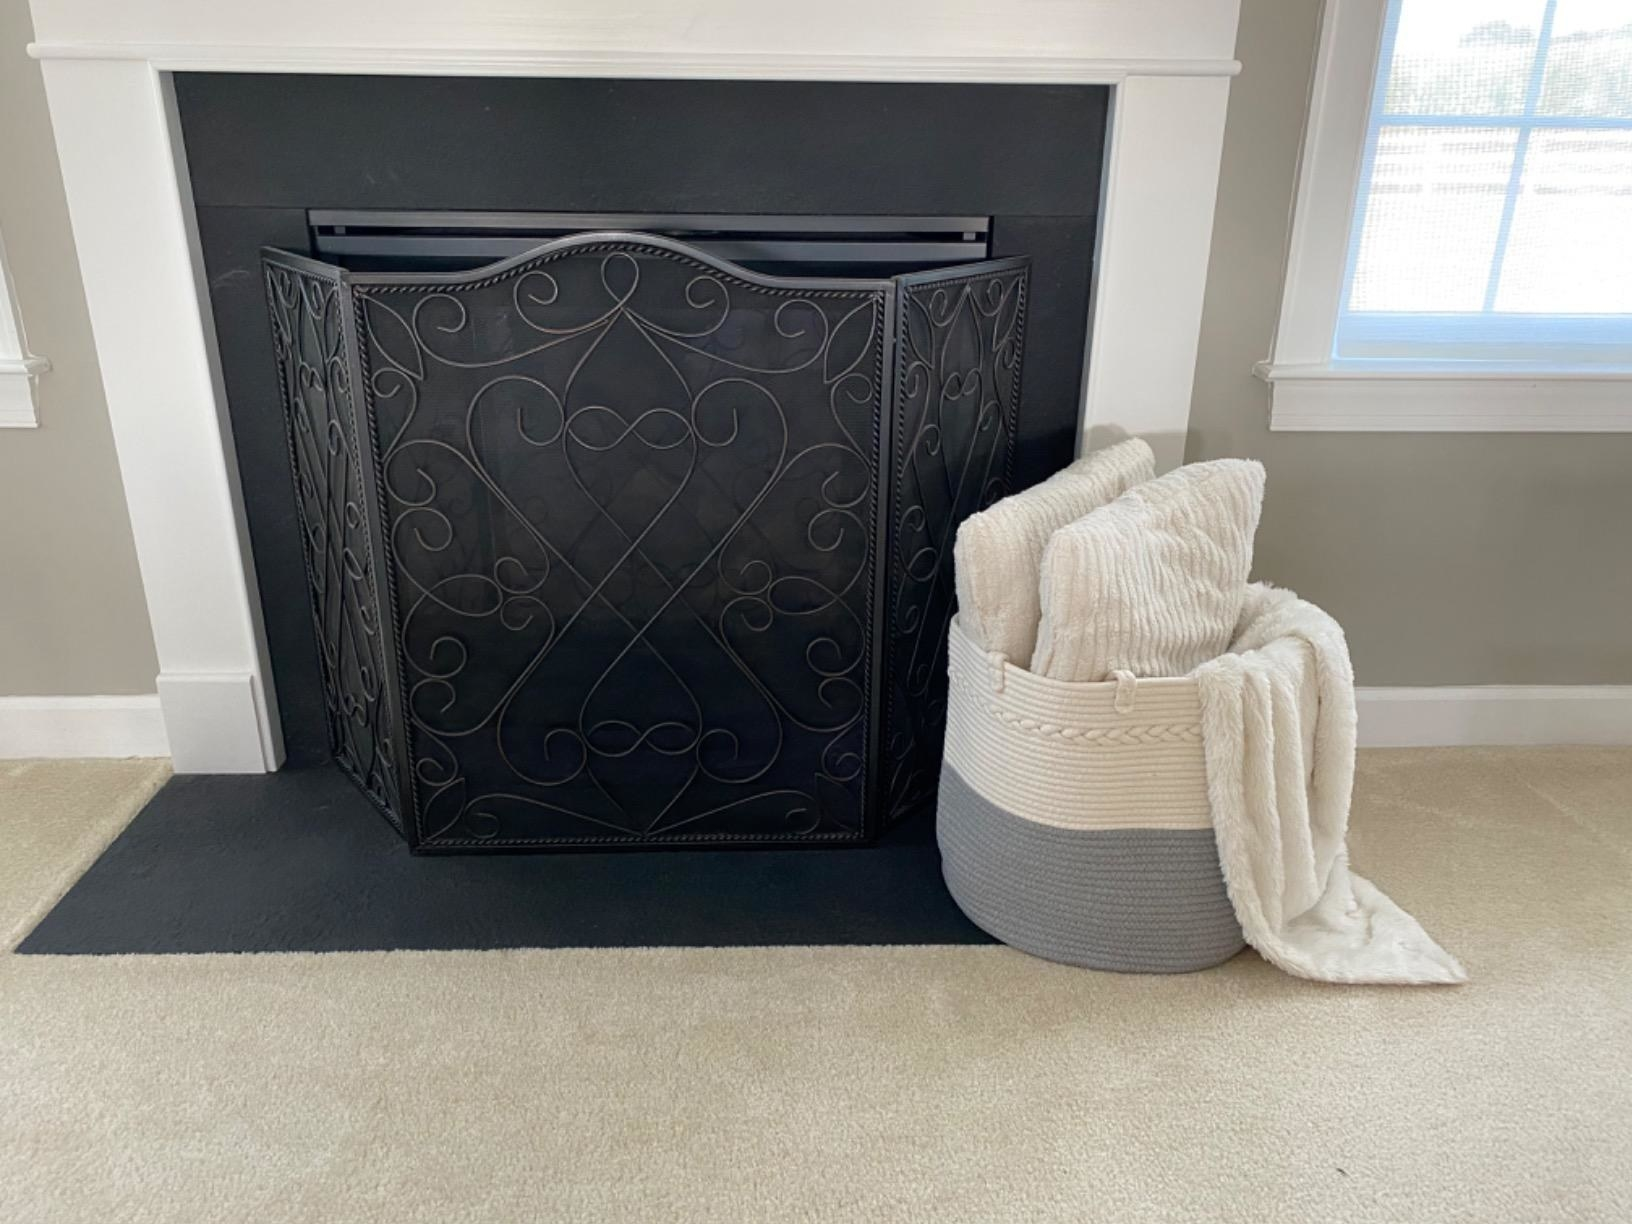 reviewer image of the mediterranean style cosyland extra large woven basket with pillows and a blanket in it propped against a fireplace